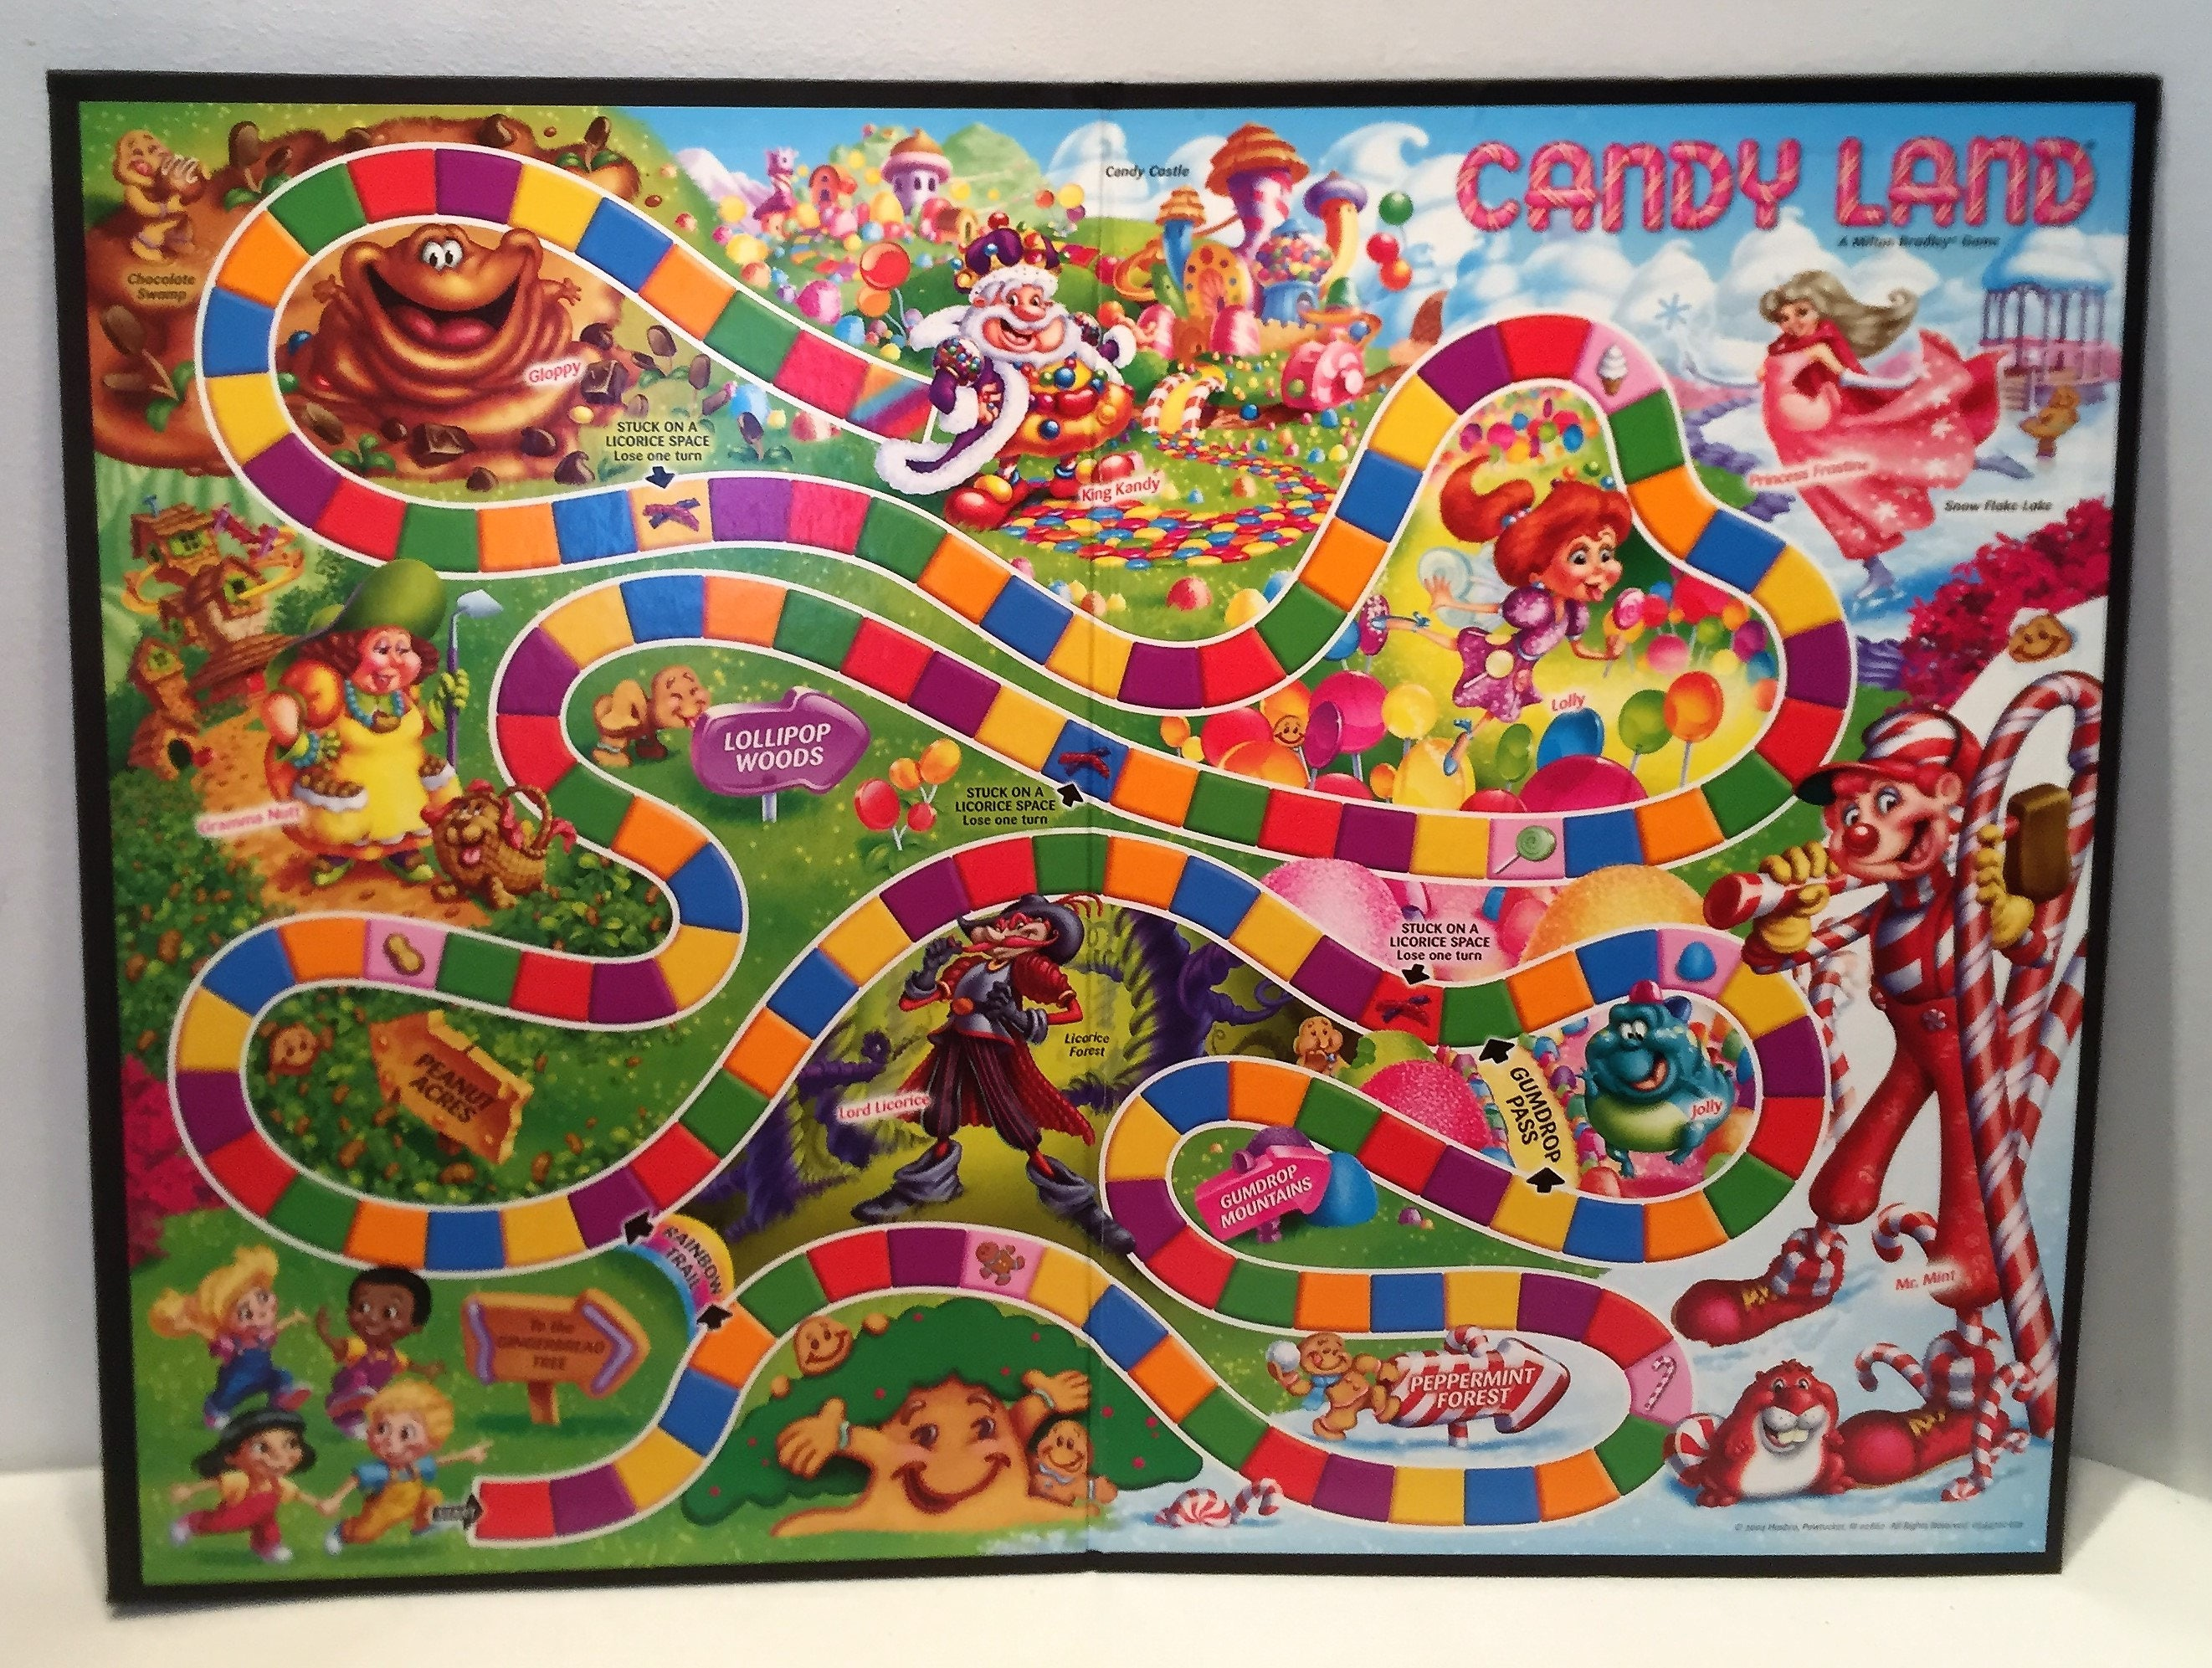 Playing Candyland Online